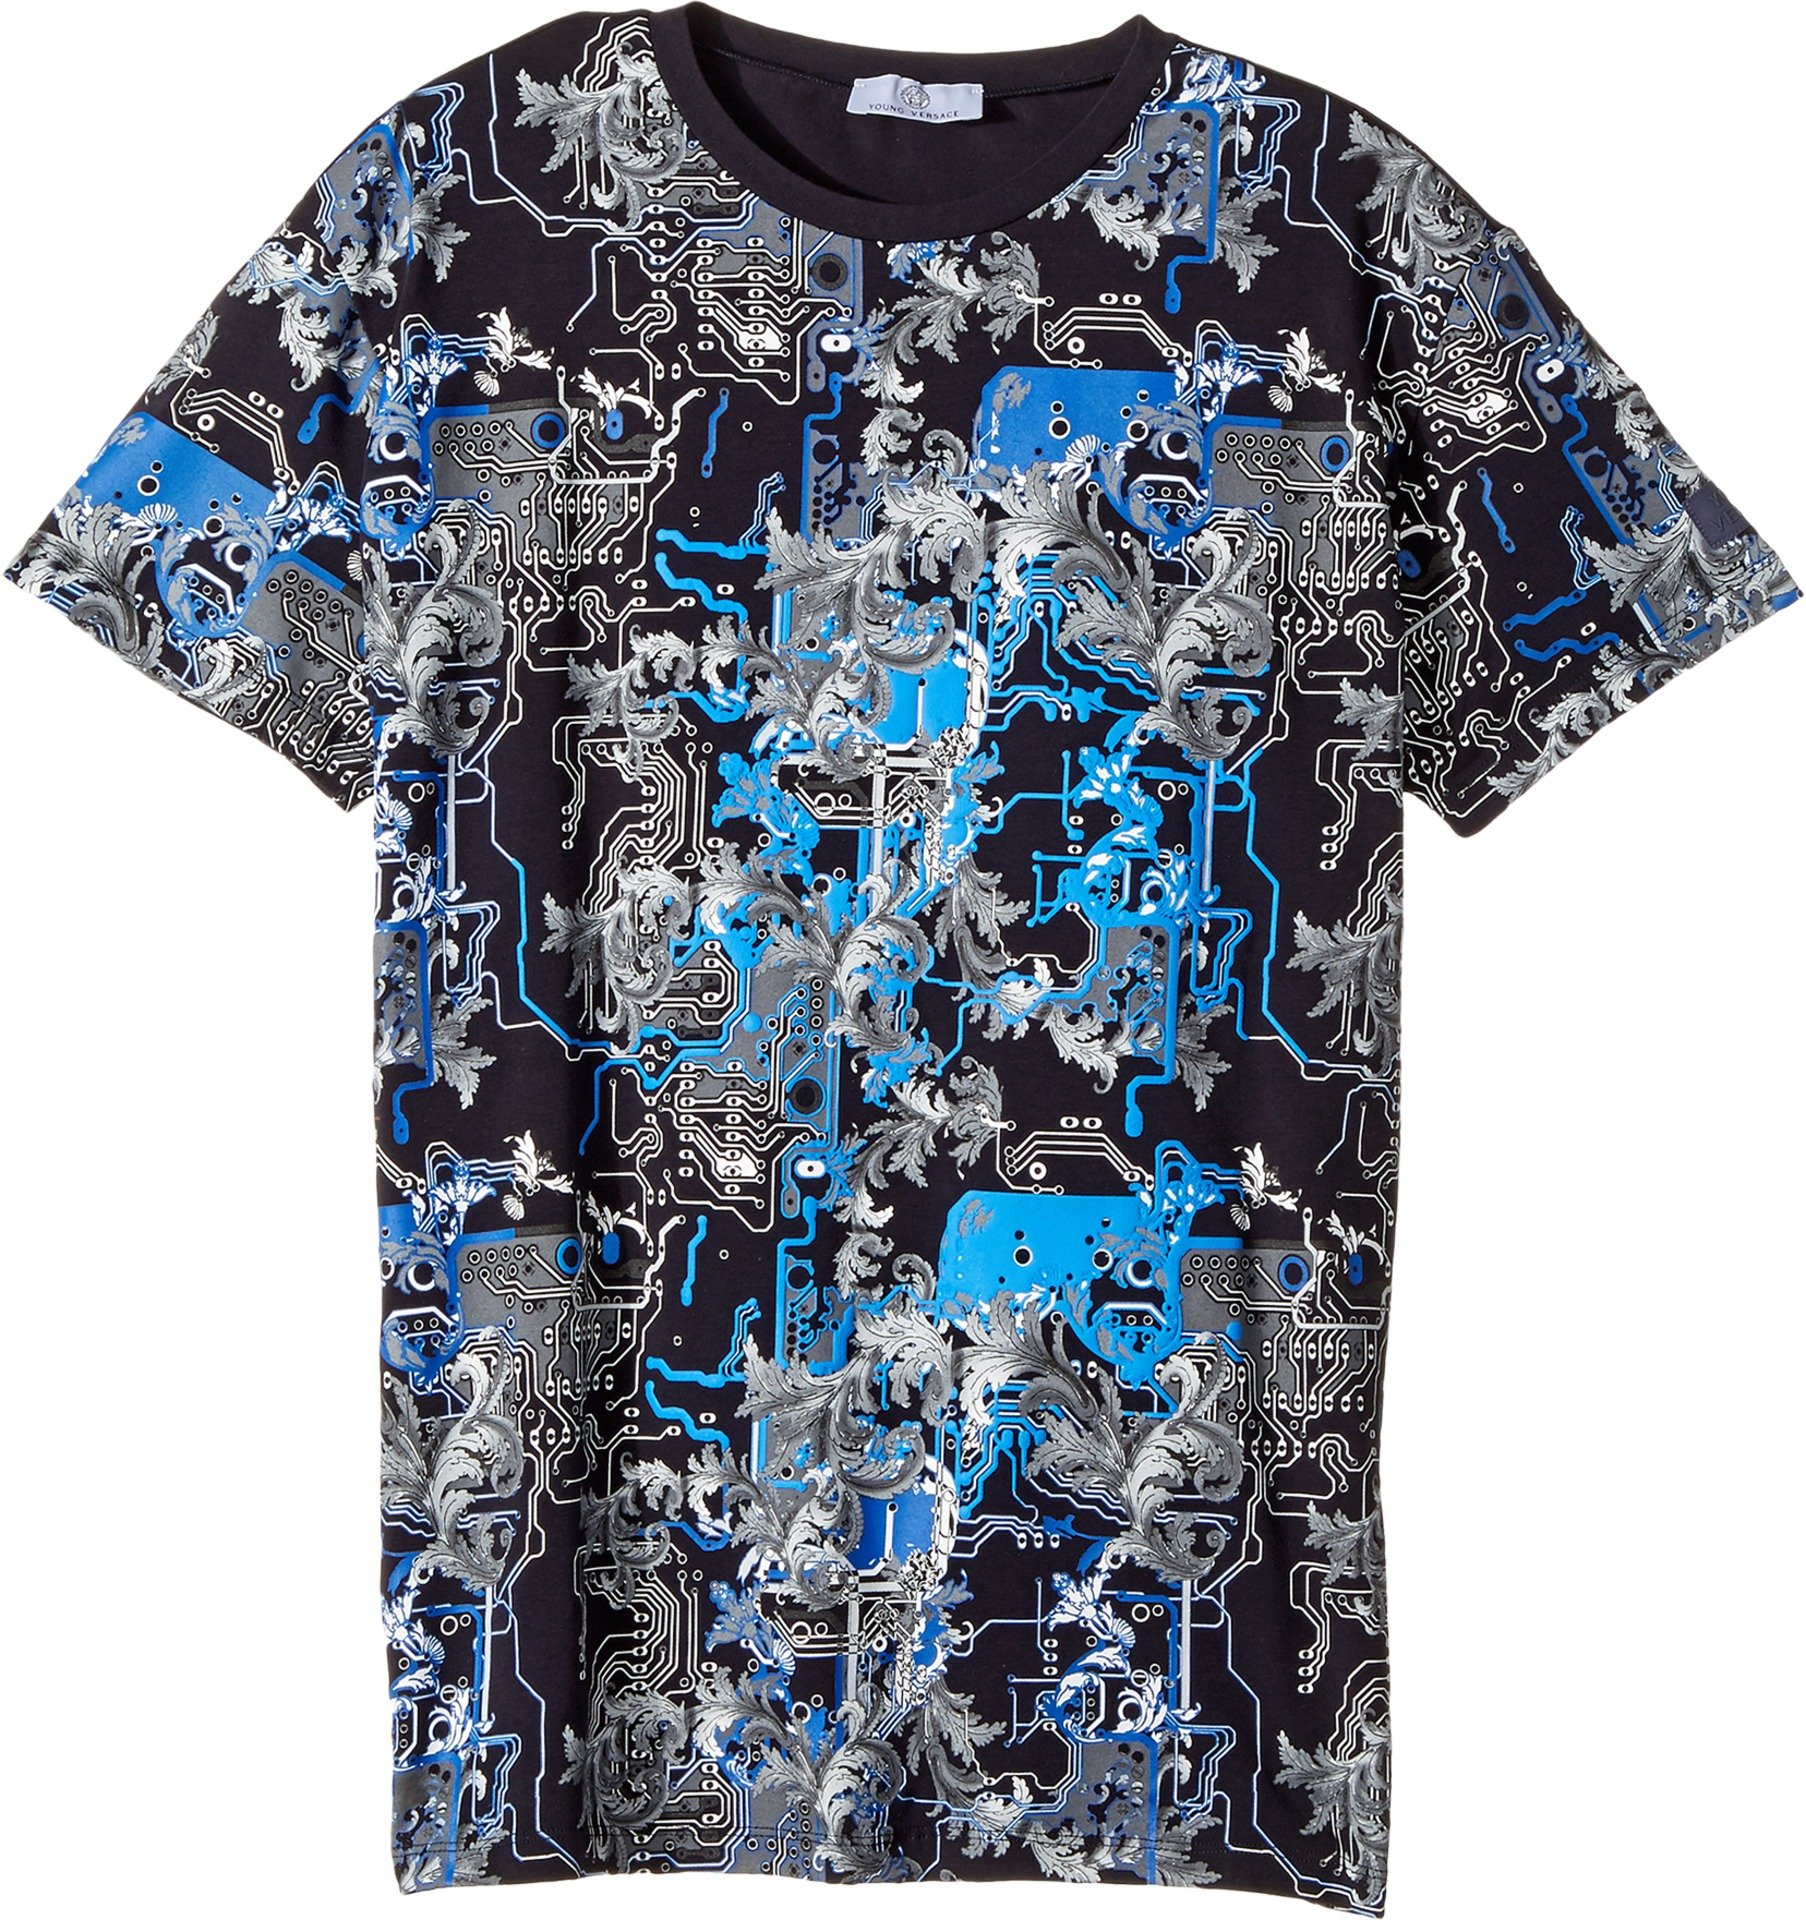 Versace Kids  Boy's Short Sleeve Barocco Circuit Graphic T-Shirt (Big Kids) Blue/Multi 11 - 12